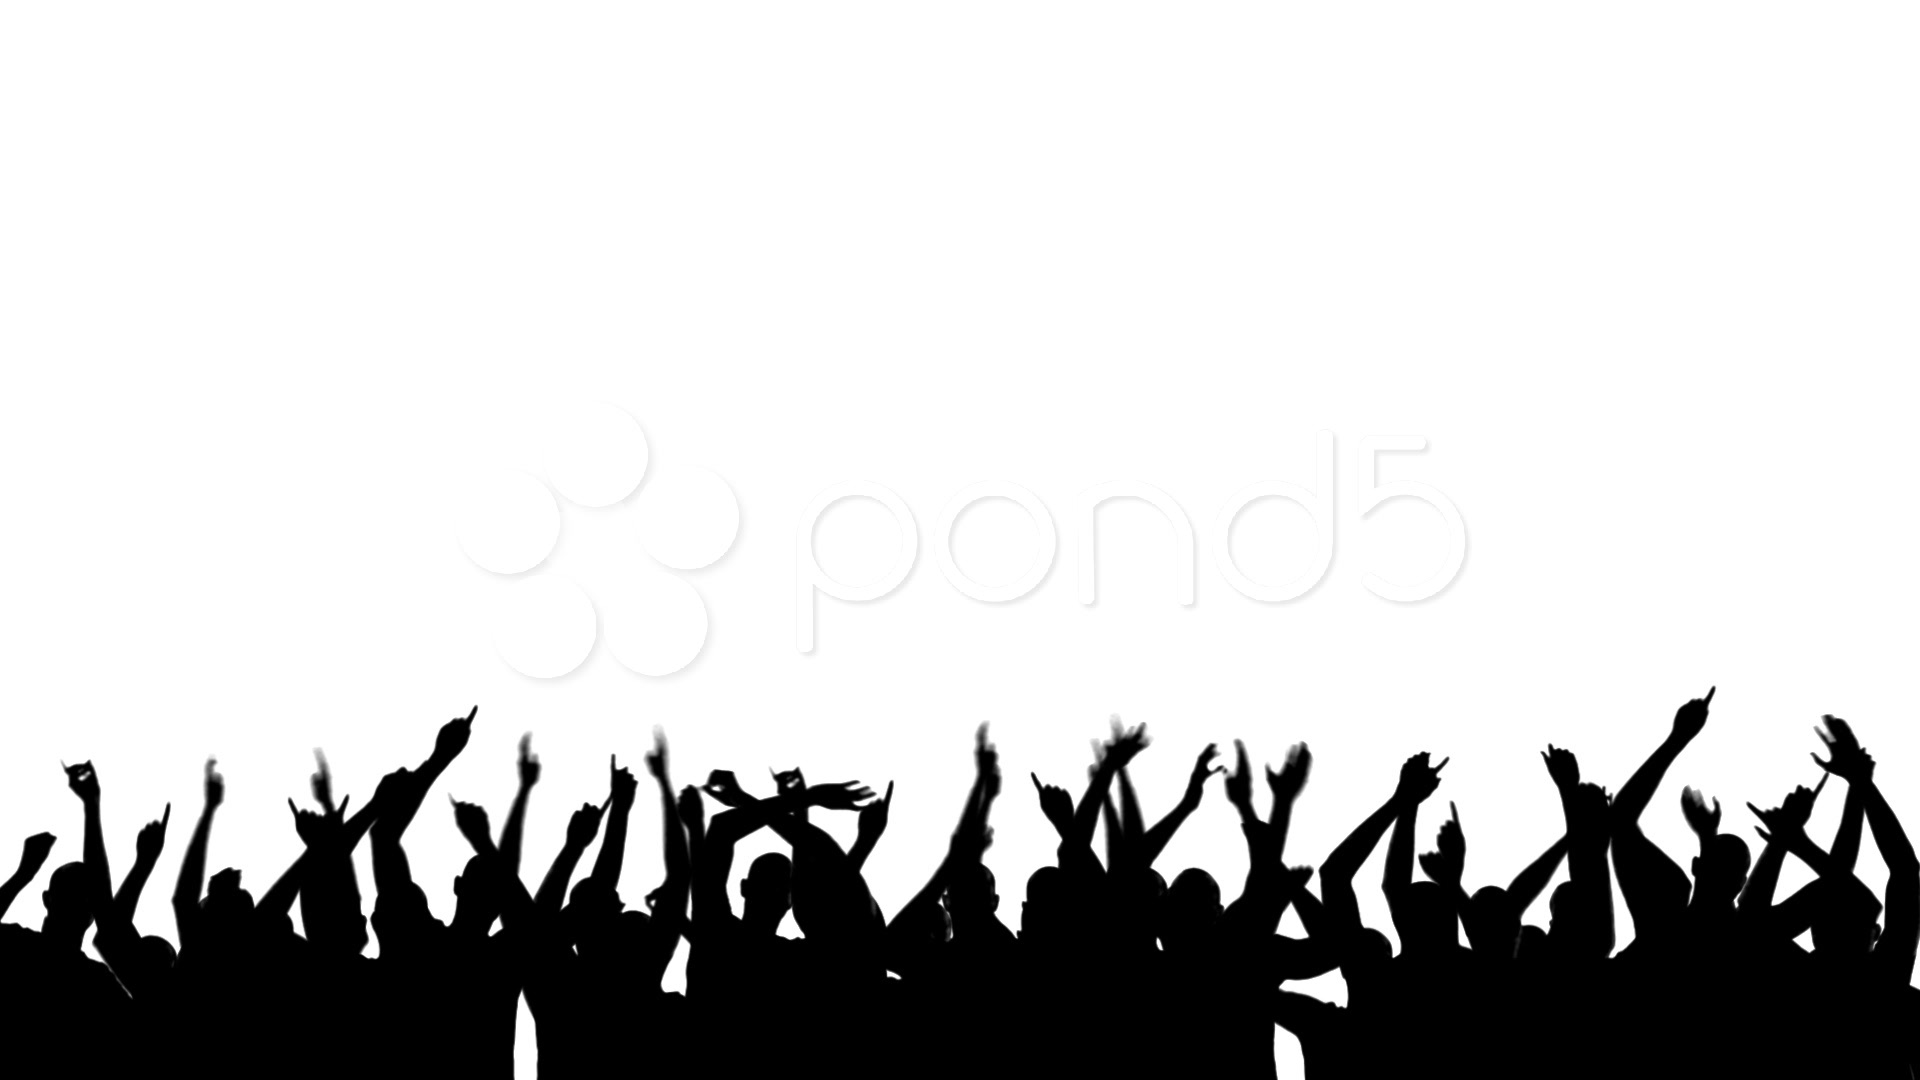 Fans clipart audience applause Info Clipart Clipart Clipart Silhouette